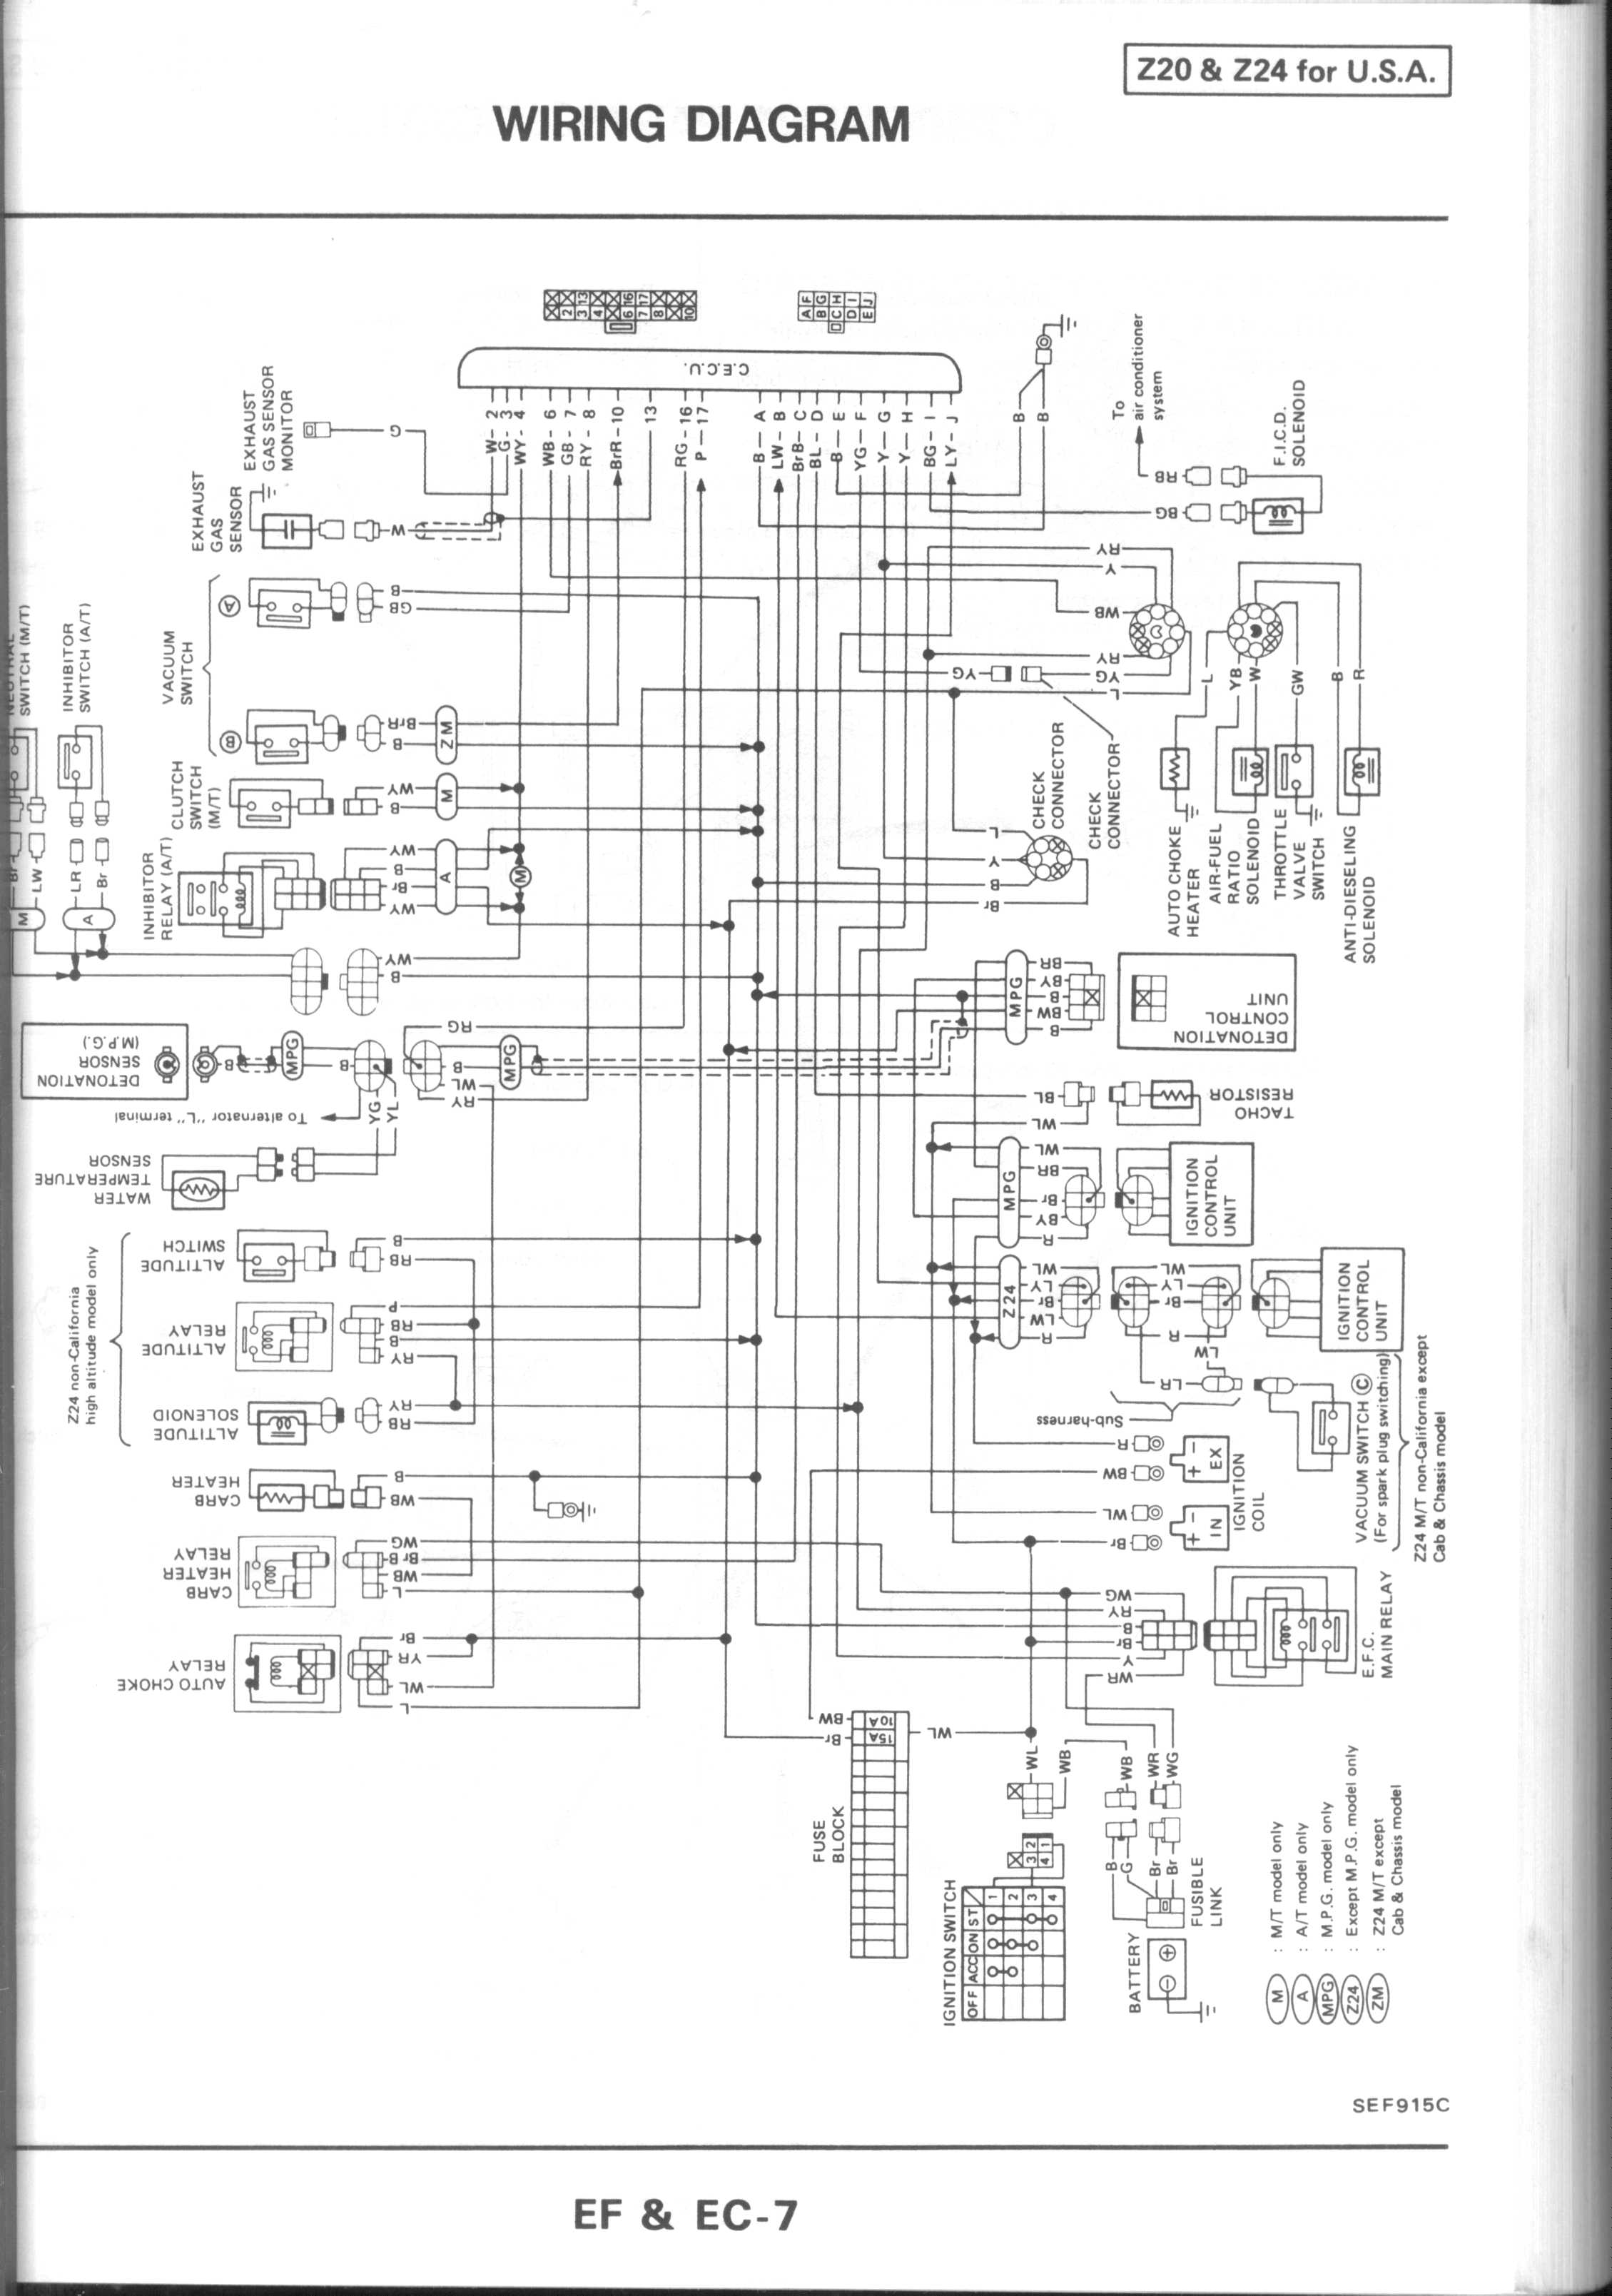 pickup wiring century ac motor diagram 115 230 volts nissan hardbody d21 engine free image for